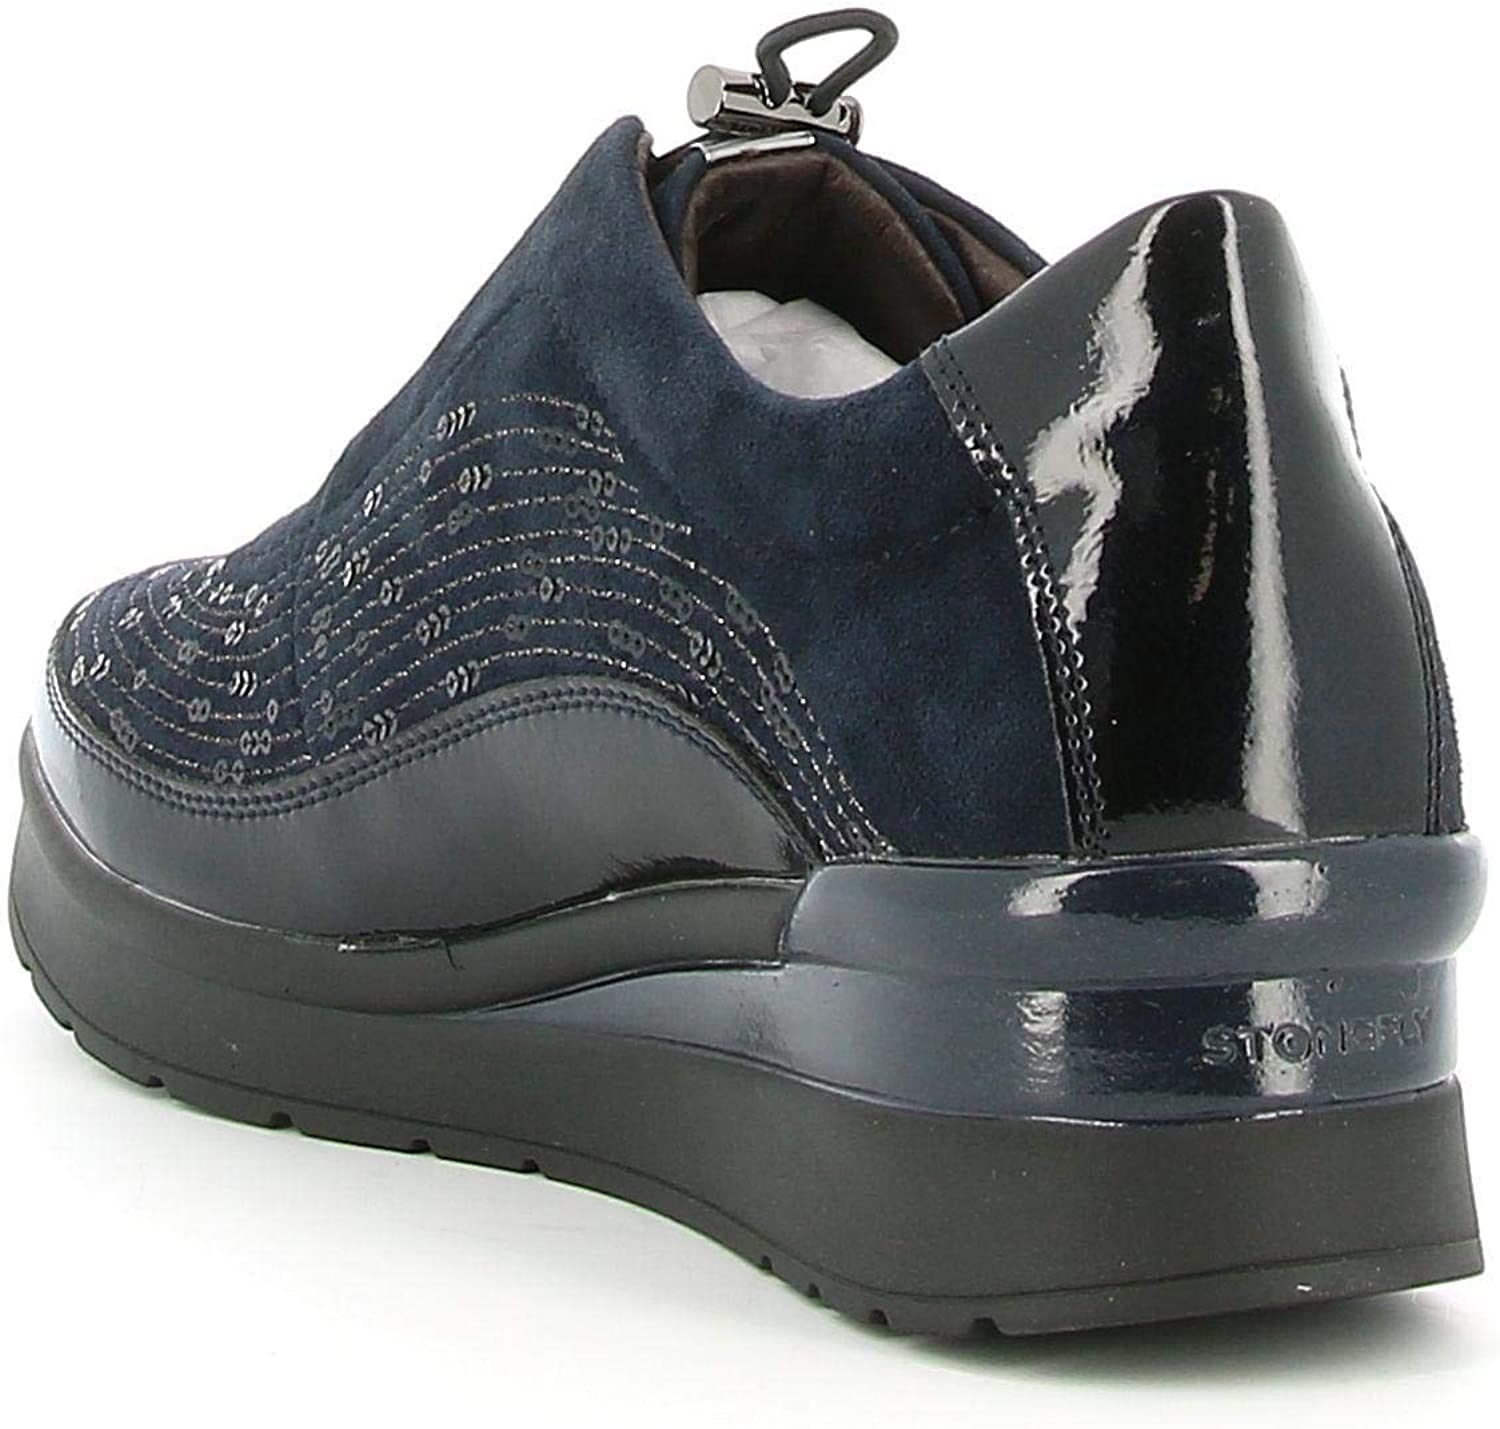 STONEFLY Laced Sports 214528 Sneakers Mujer Negro